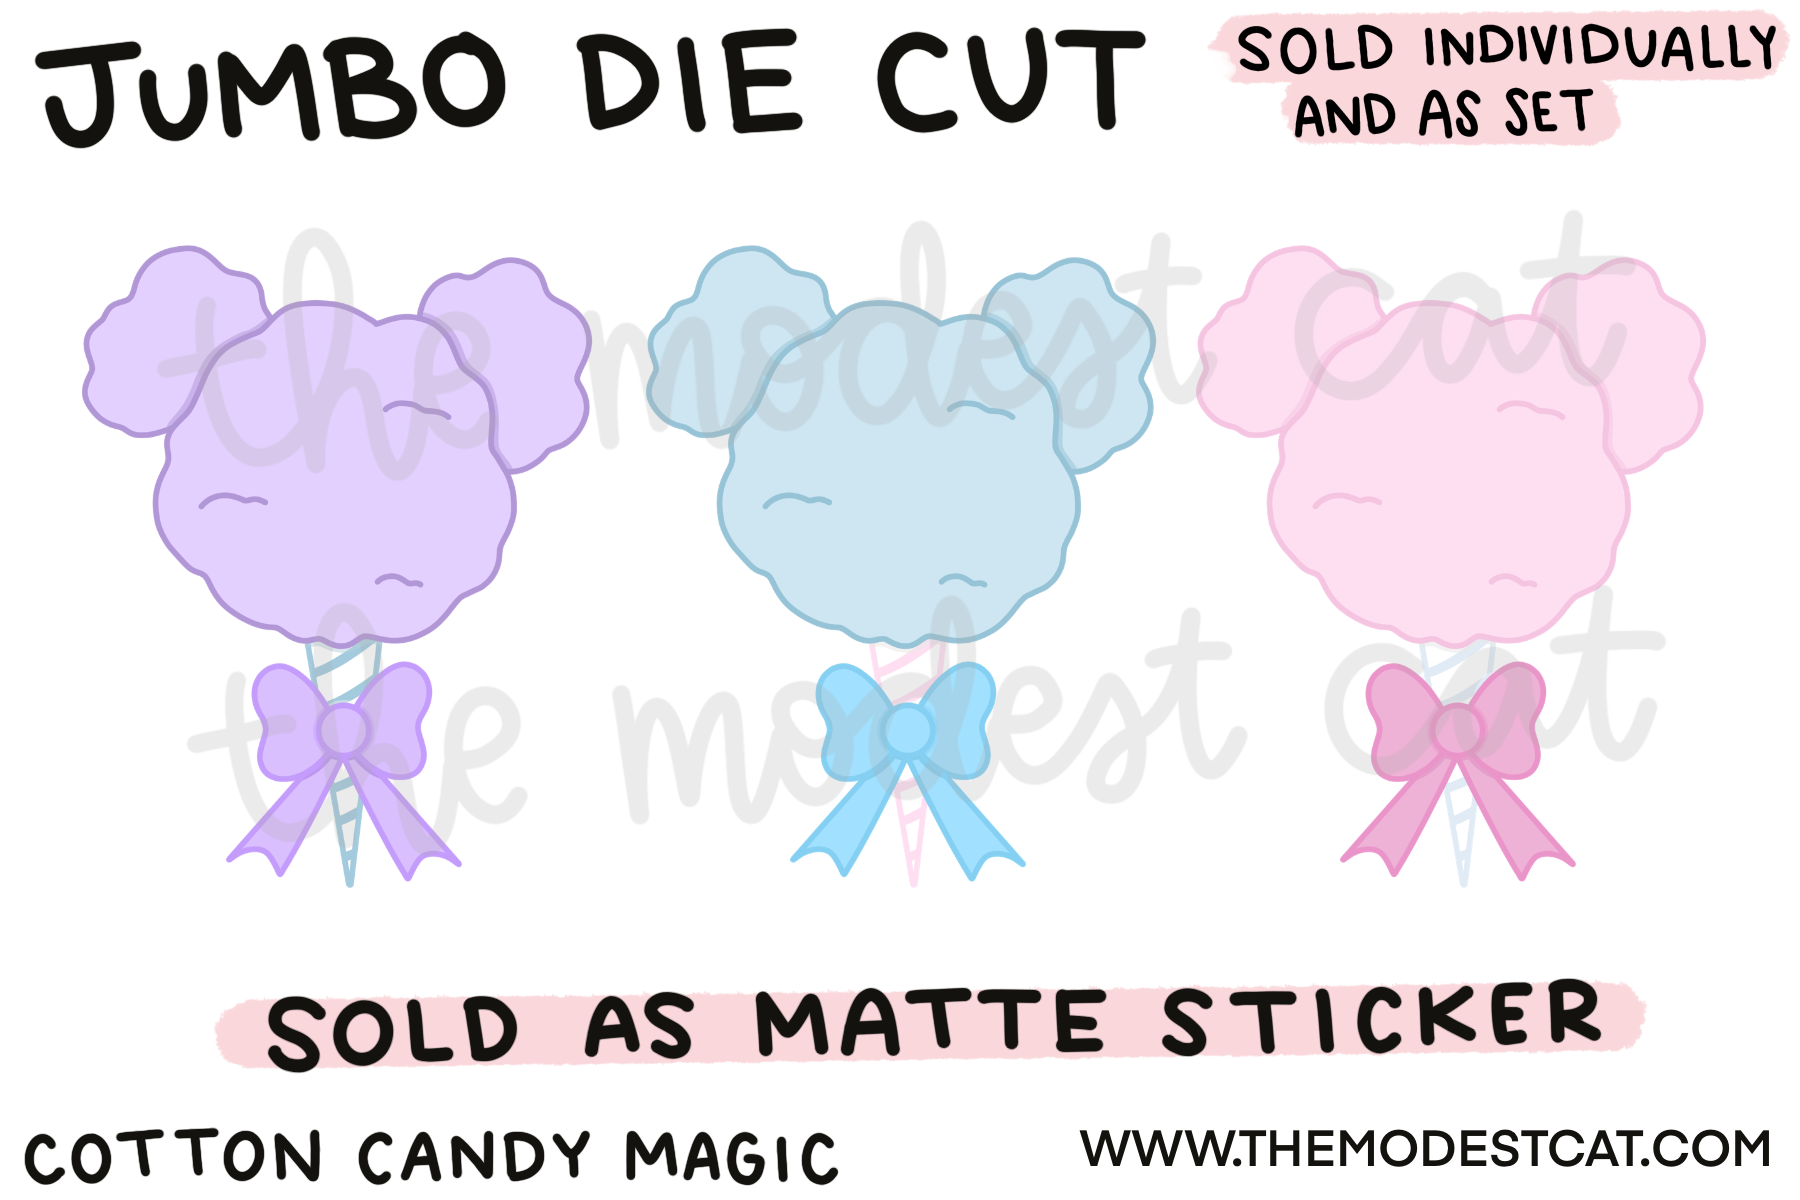 Cotton Candy Magic Jumbo Die Cut